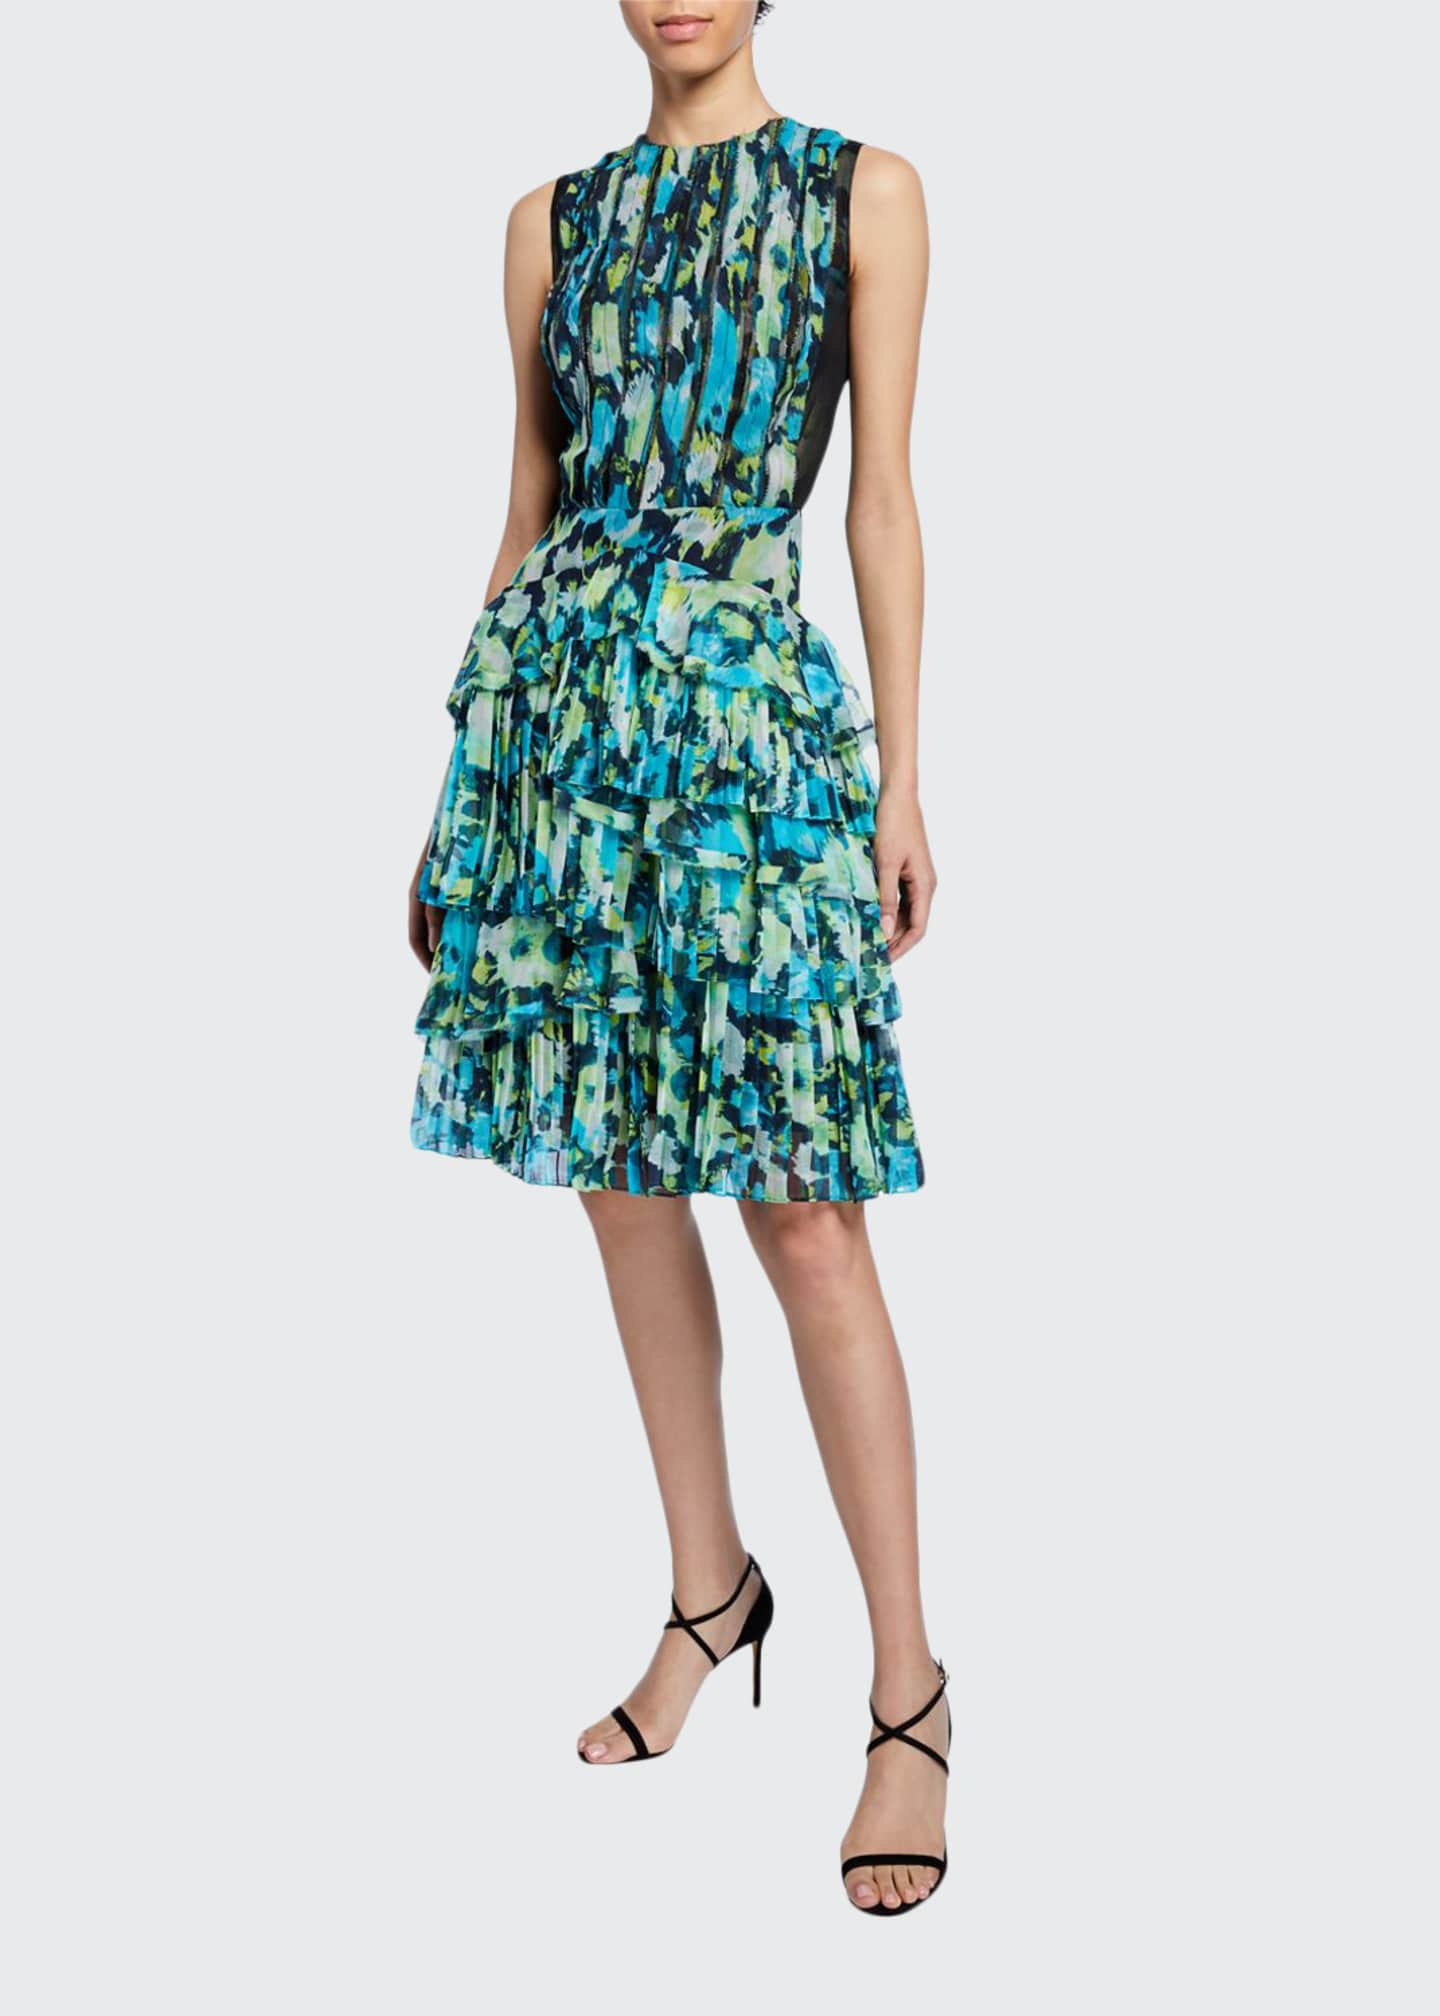 Jason Wu Collection Floral-Print Tiered Ruffle-Chiffon Dress